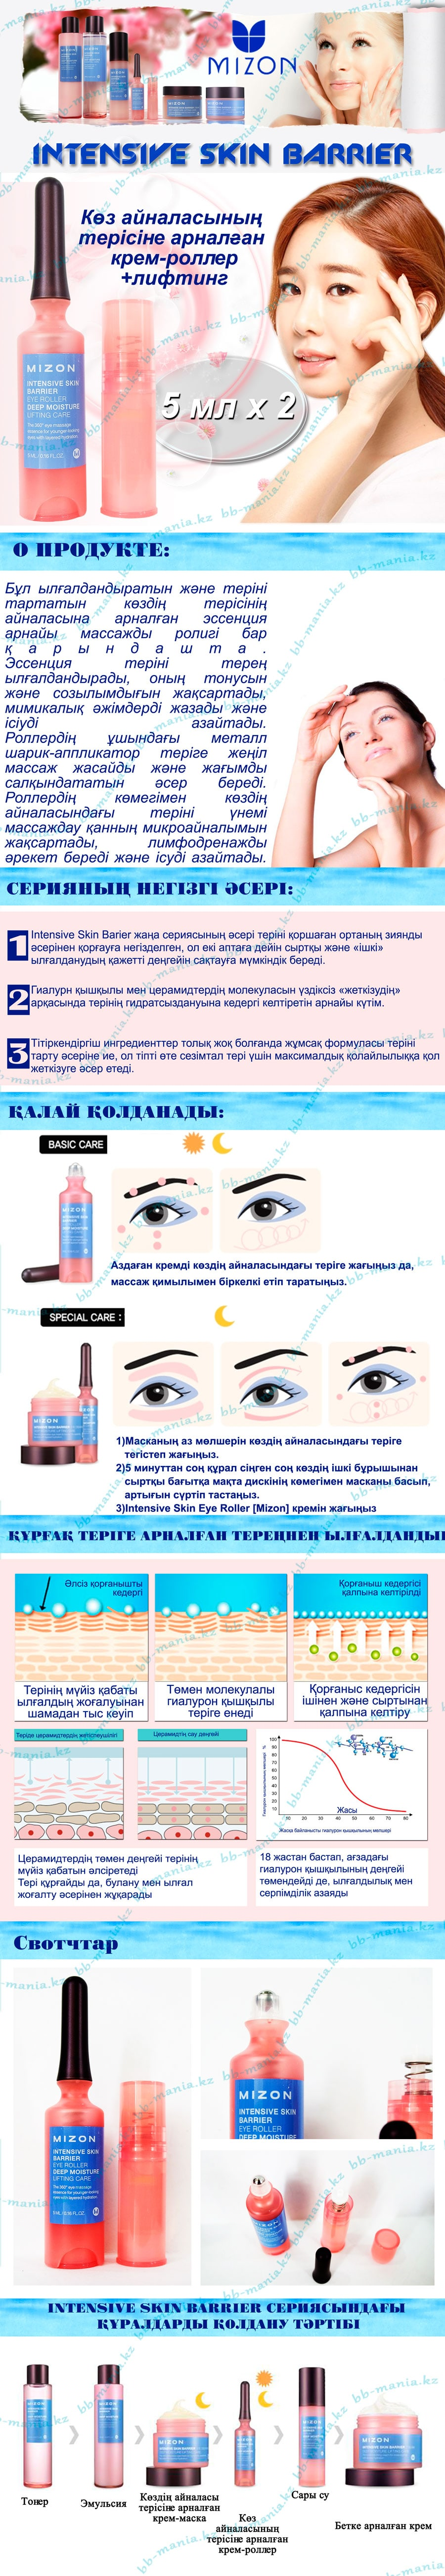 Intensive-Skin-Eye-Roller-[Mizon]-кз-min